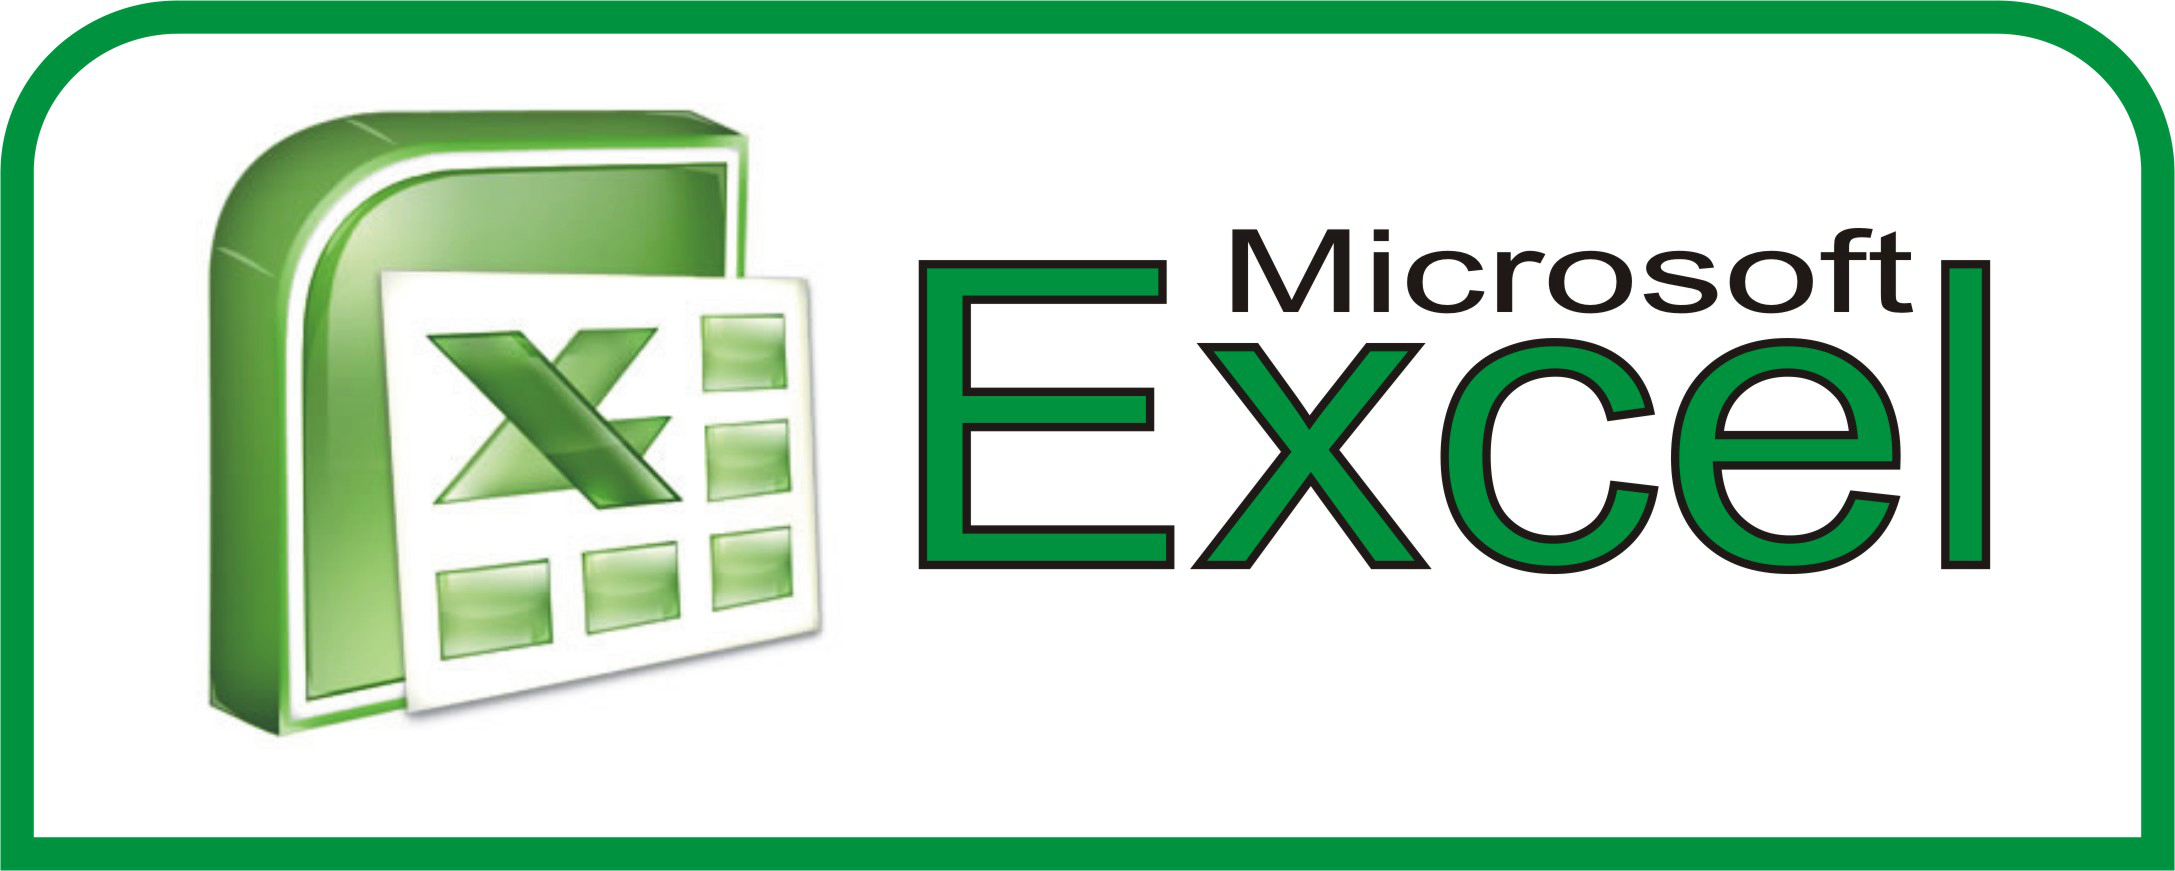 Ediblewildsus  Wonderful  Excel Shortcuts You Probably Didnt Know About  Techdissected With Hot Count Number Of Words In Excel Besides Excel Subtract Percentage Furthermore Interactive Excel Training With Divine Lookup Formula In Excel Also Lock An Excel File In Addition How To Get An Average On Excel And Is Excel Free As Well As Financial Models In Excel Additionally Cross Out In Excel From Techdissectedcom With Ediblewildsus  Hot  Excel Shortcuts You Probably Didnt Know About  Techdissected With Divine Count Number Of Words In Excel Besides Excel Subtract Percentage Furthermore Interactive Excel Training And Wonderful Lookup Formula In Excel Also Lock An Excel File In Addition How To Get An Average On Excel From Techdissectedcom